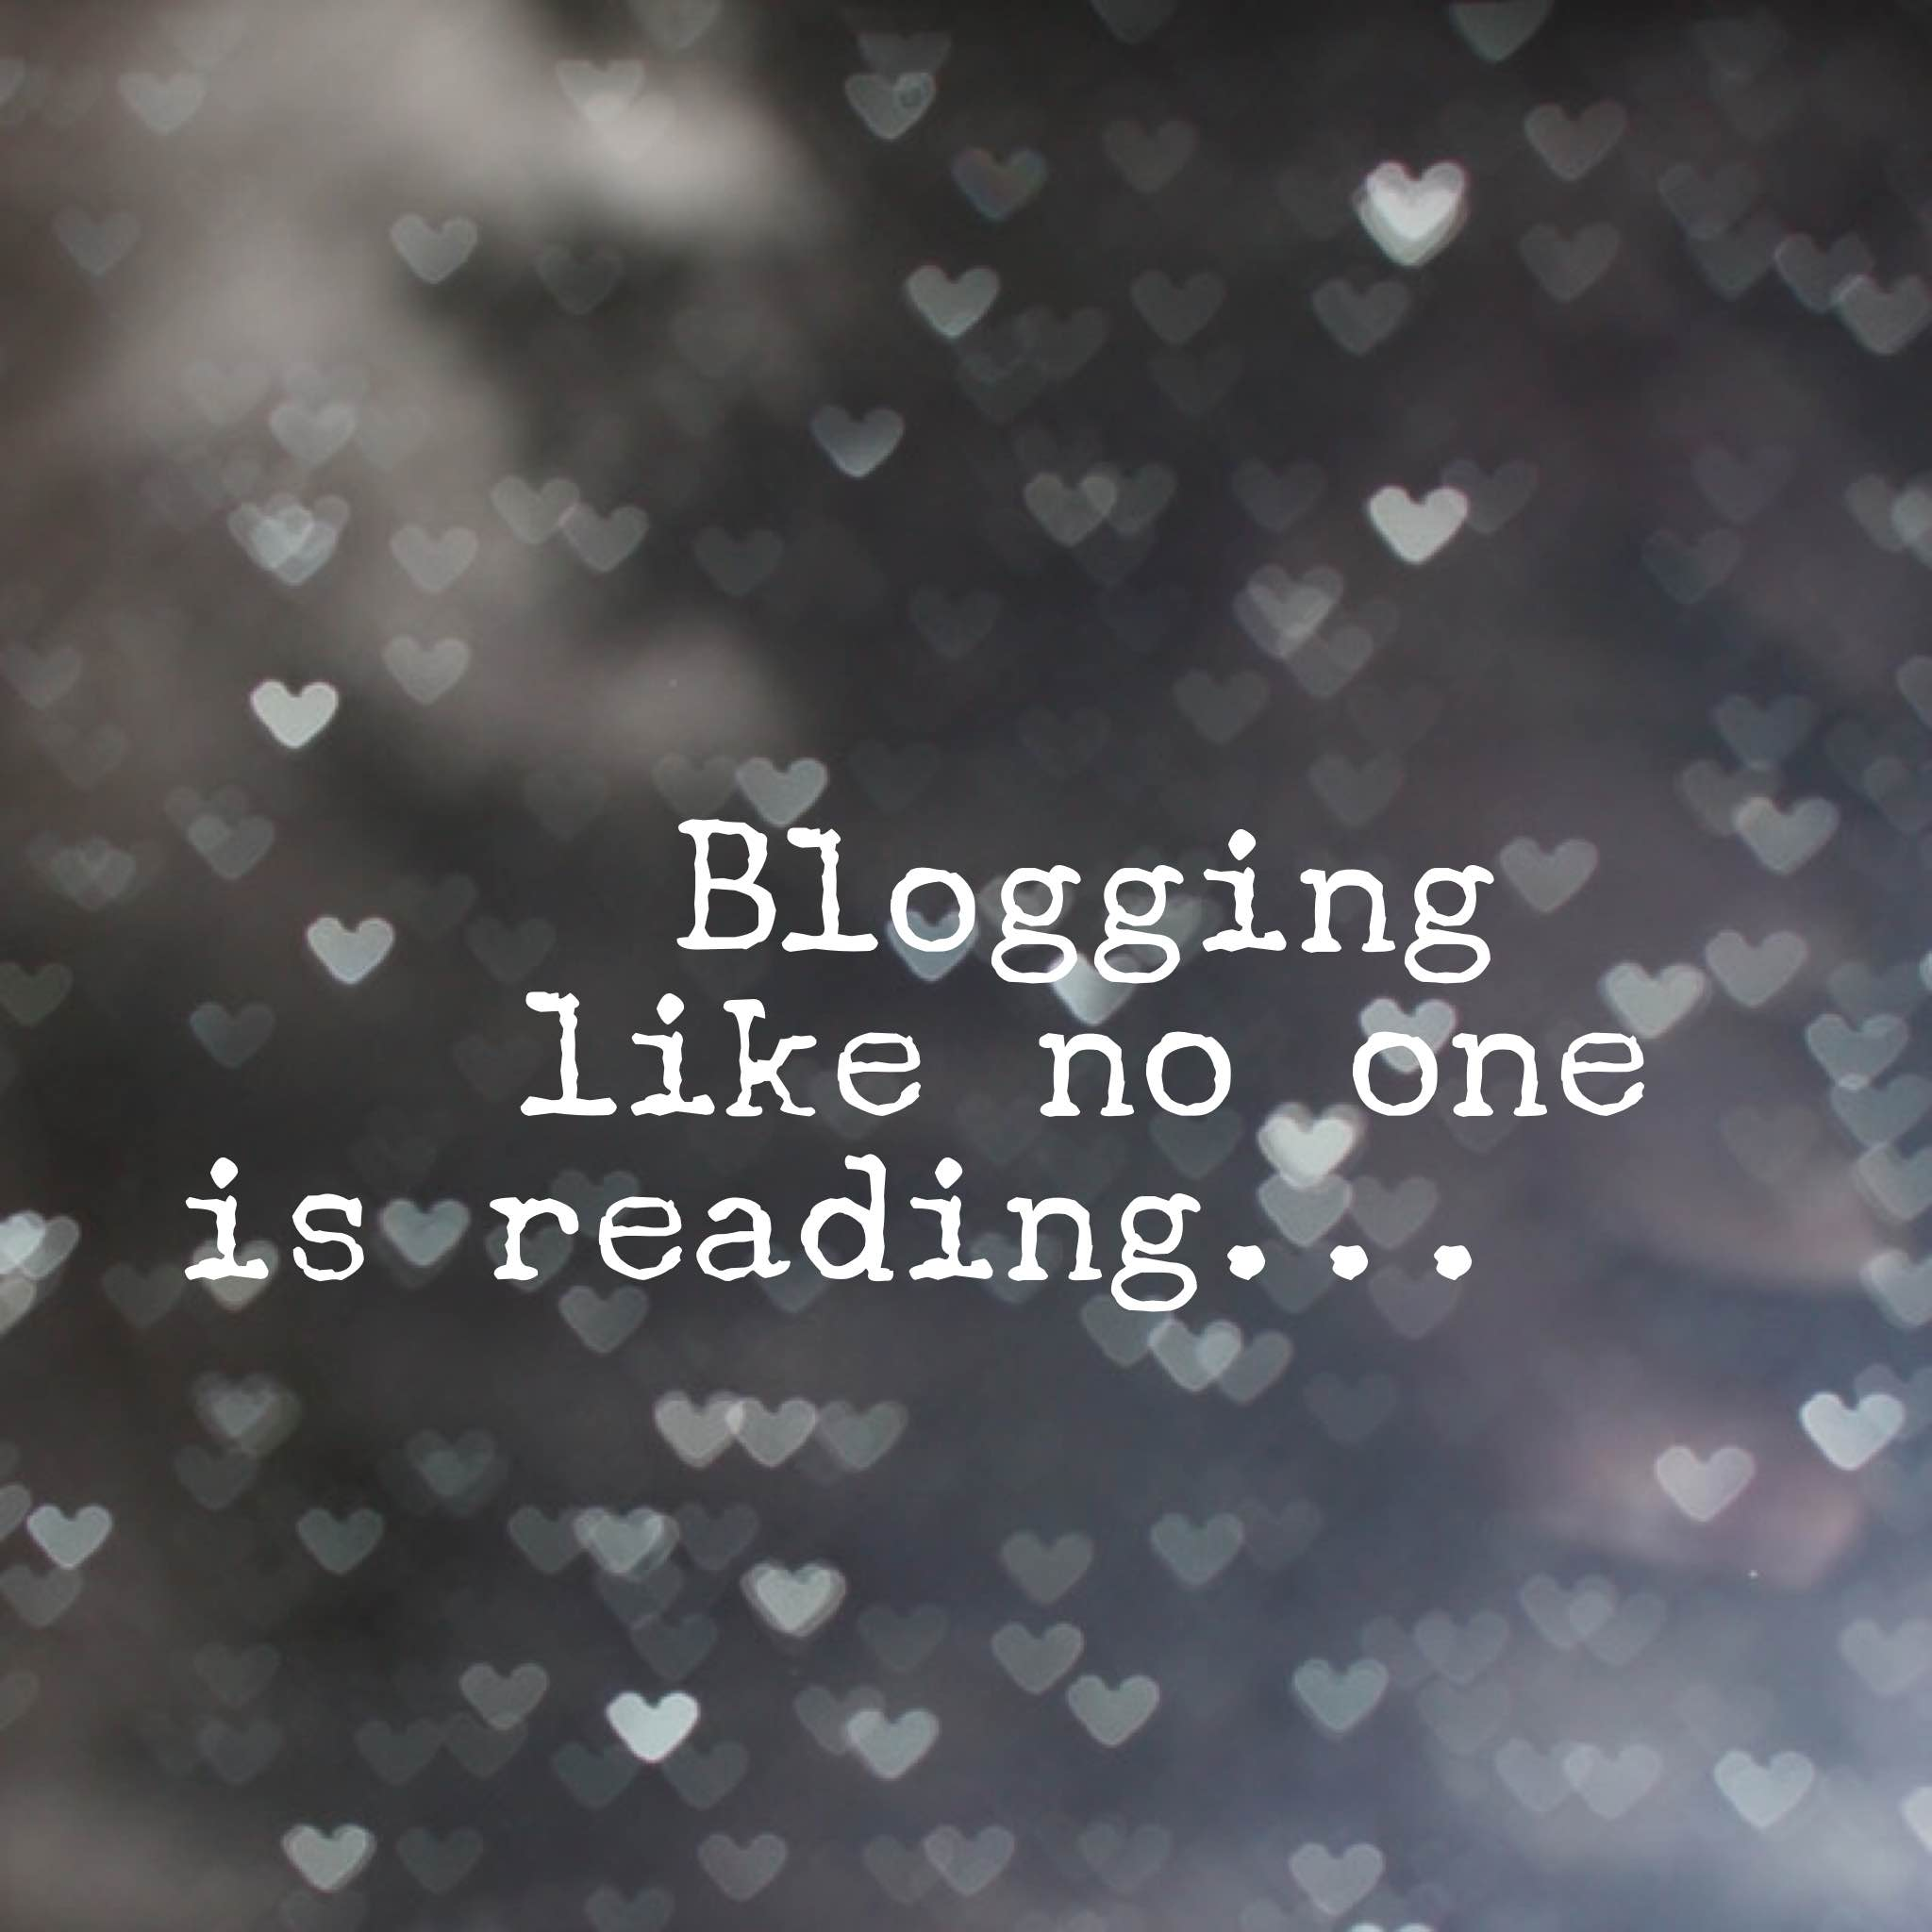 Blogging like no one is reading title pic